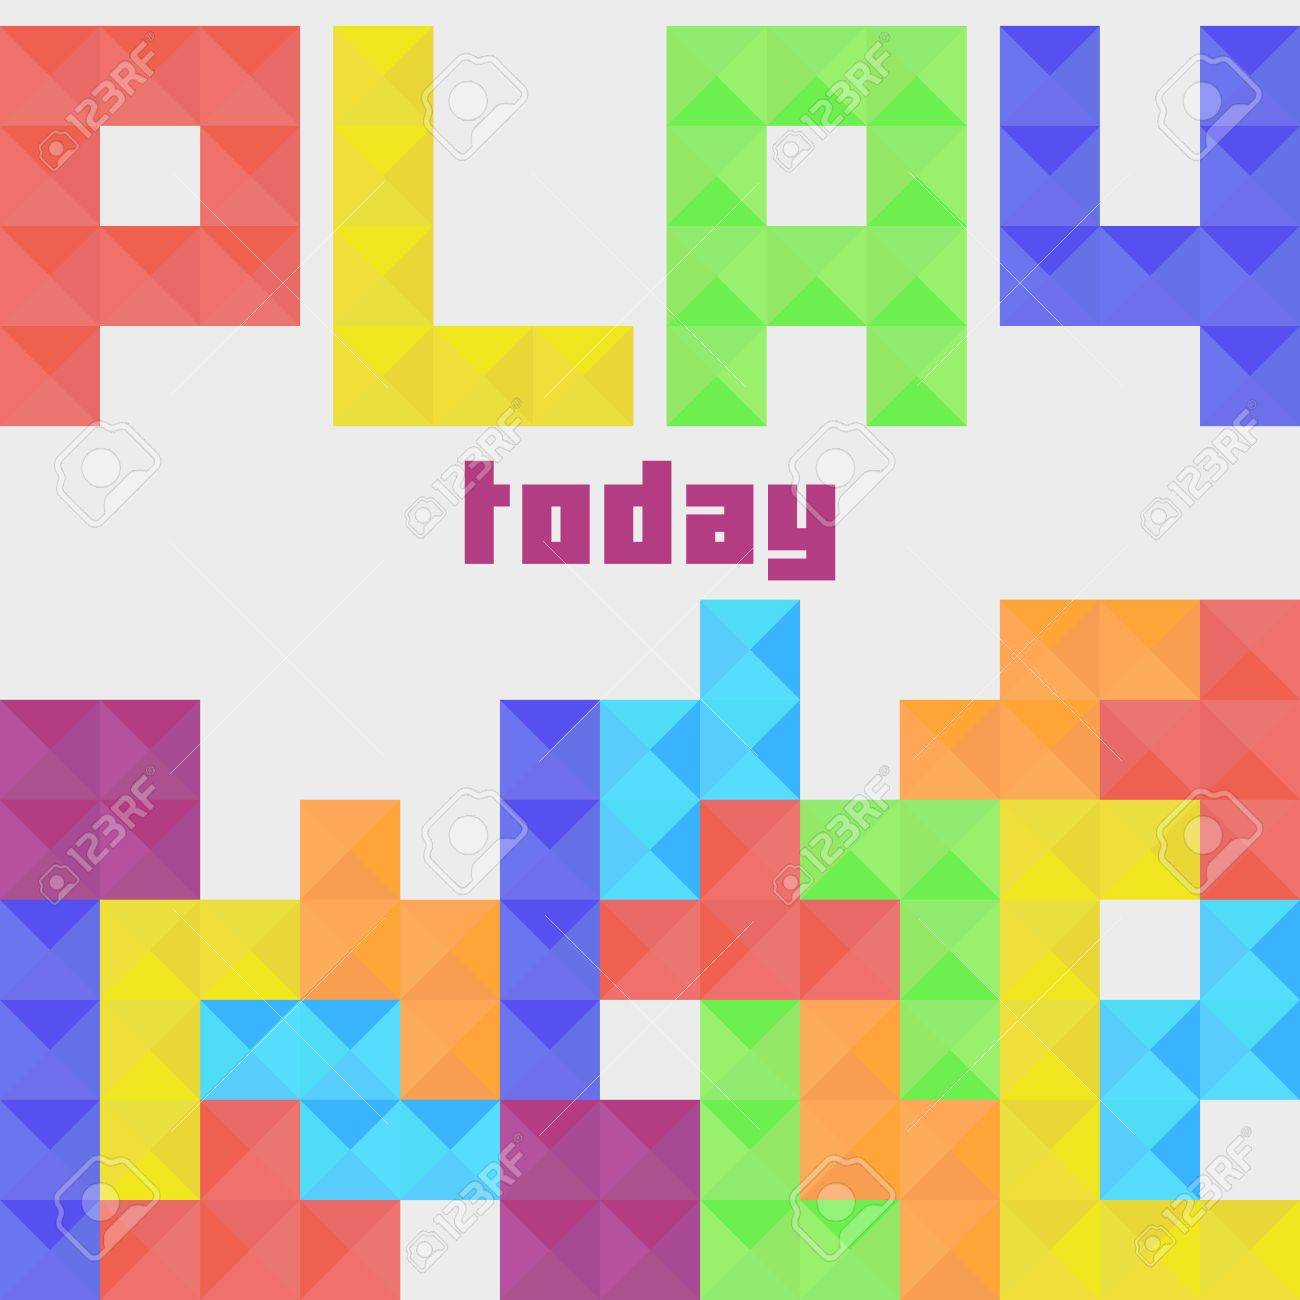 Classic game of Tetris  Colorful tetrimino pieces in row  Play